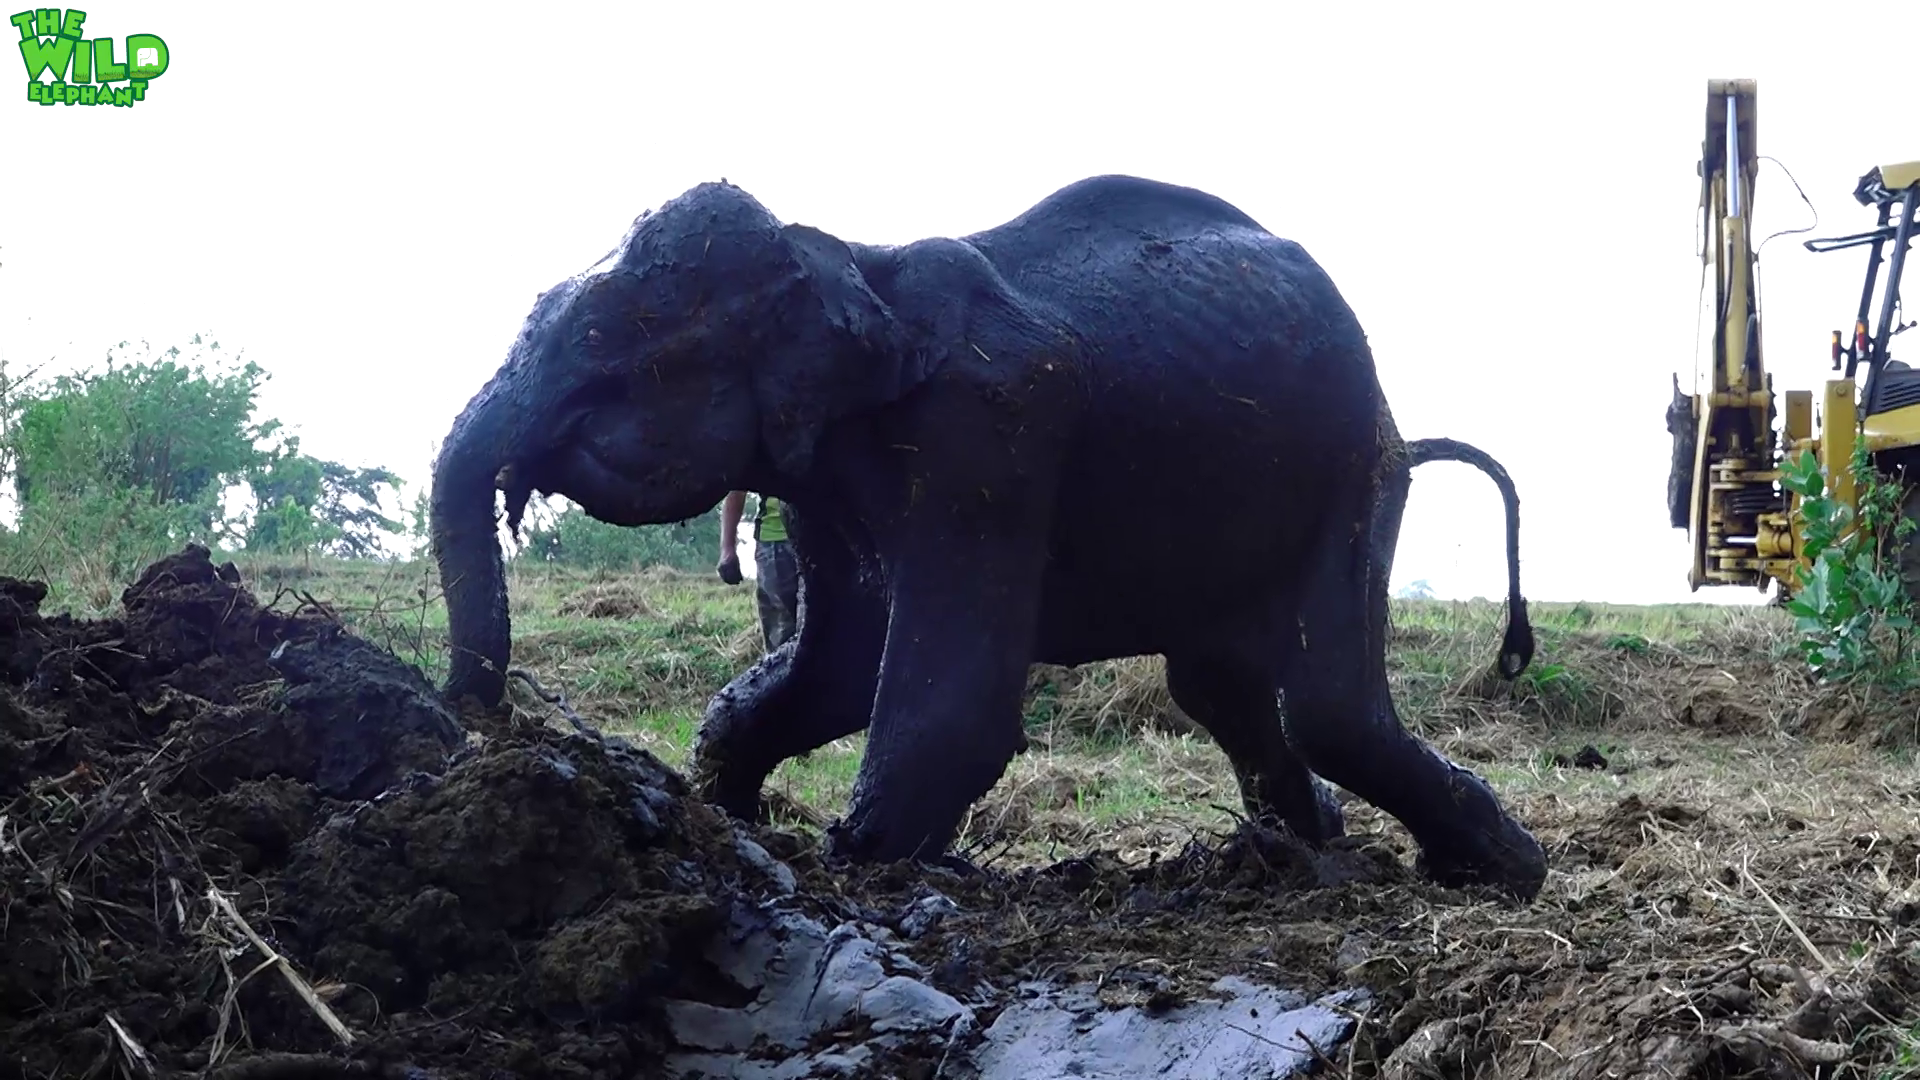 Sick Elephant Stuck In The Mud Saved By Real Life Heroes Wild Elaphant Video Free and premium elephant png, transparent background images. sick elephant stuck in the mud saved by